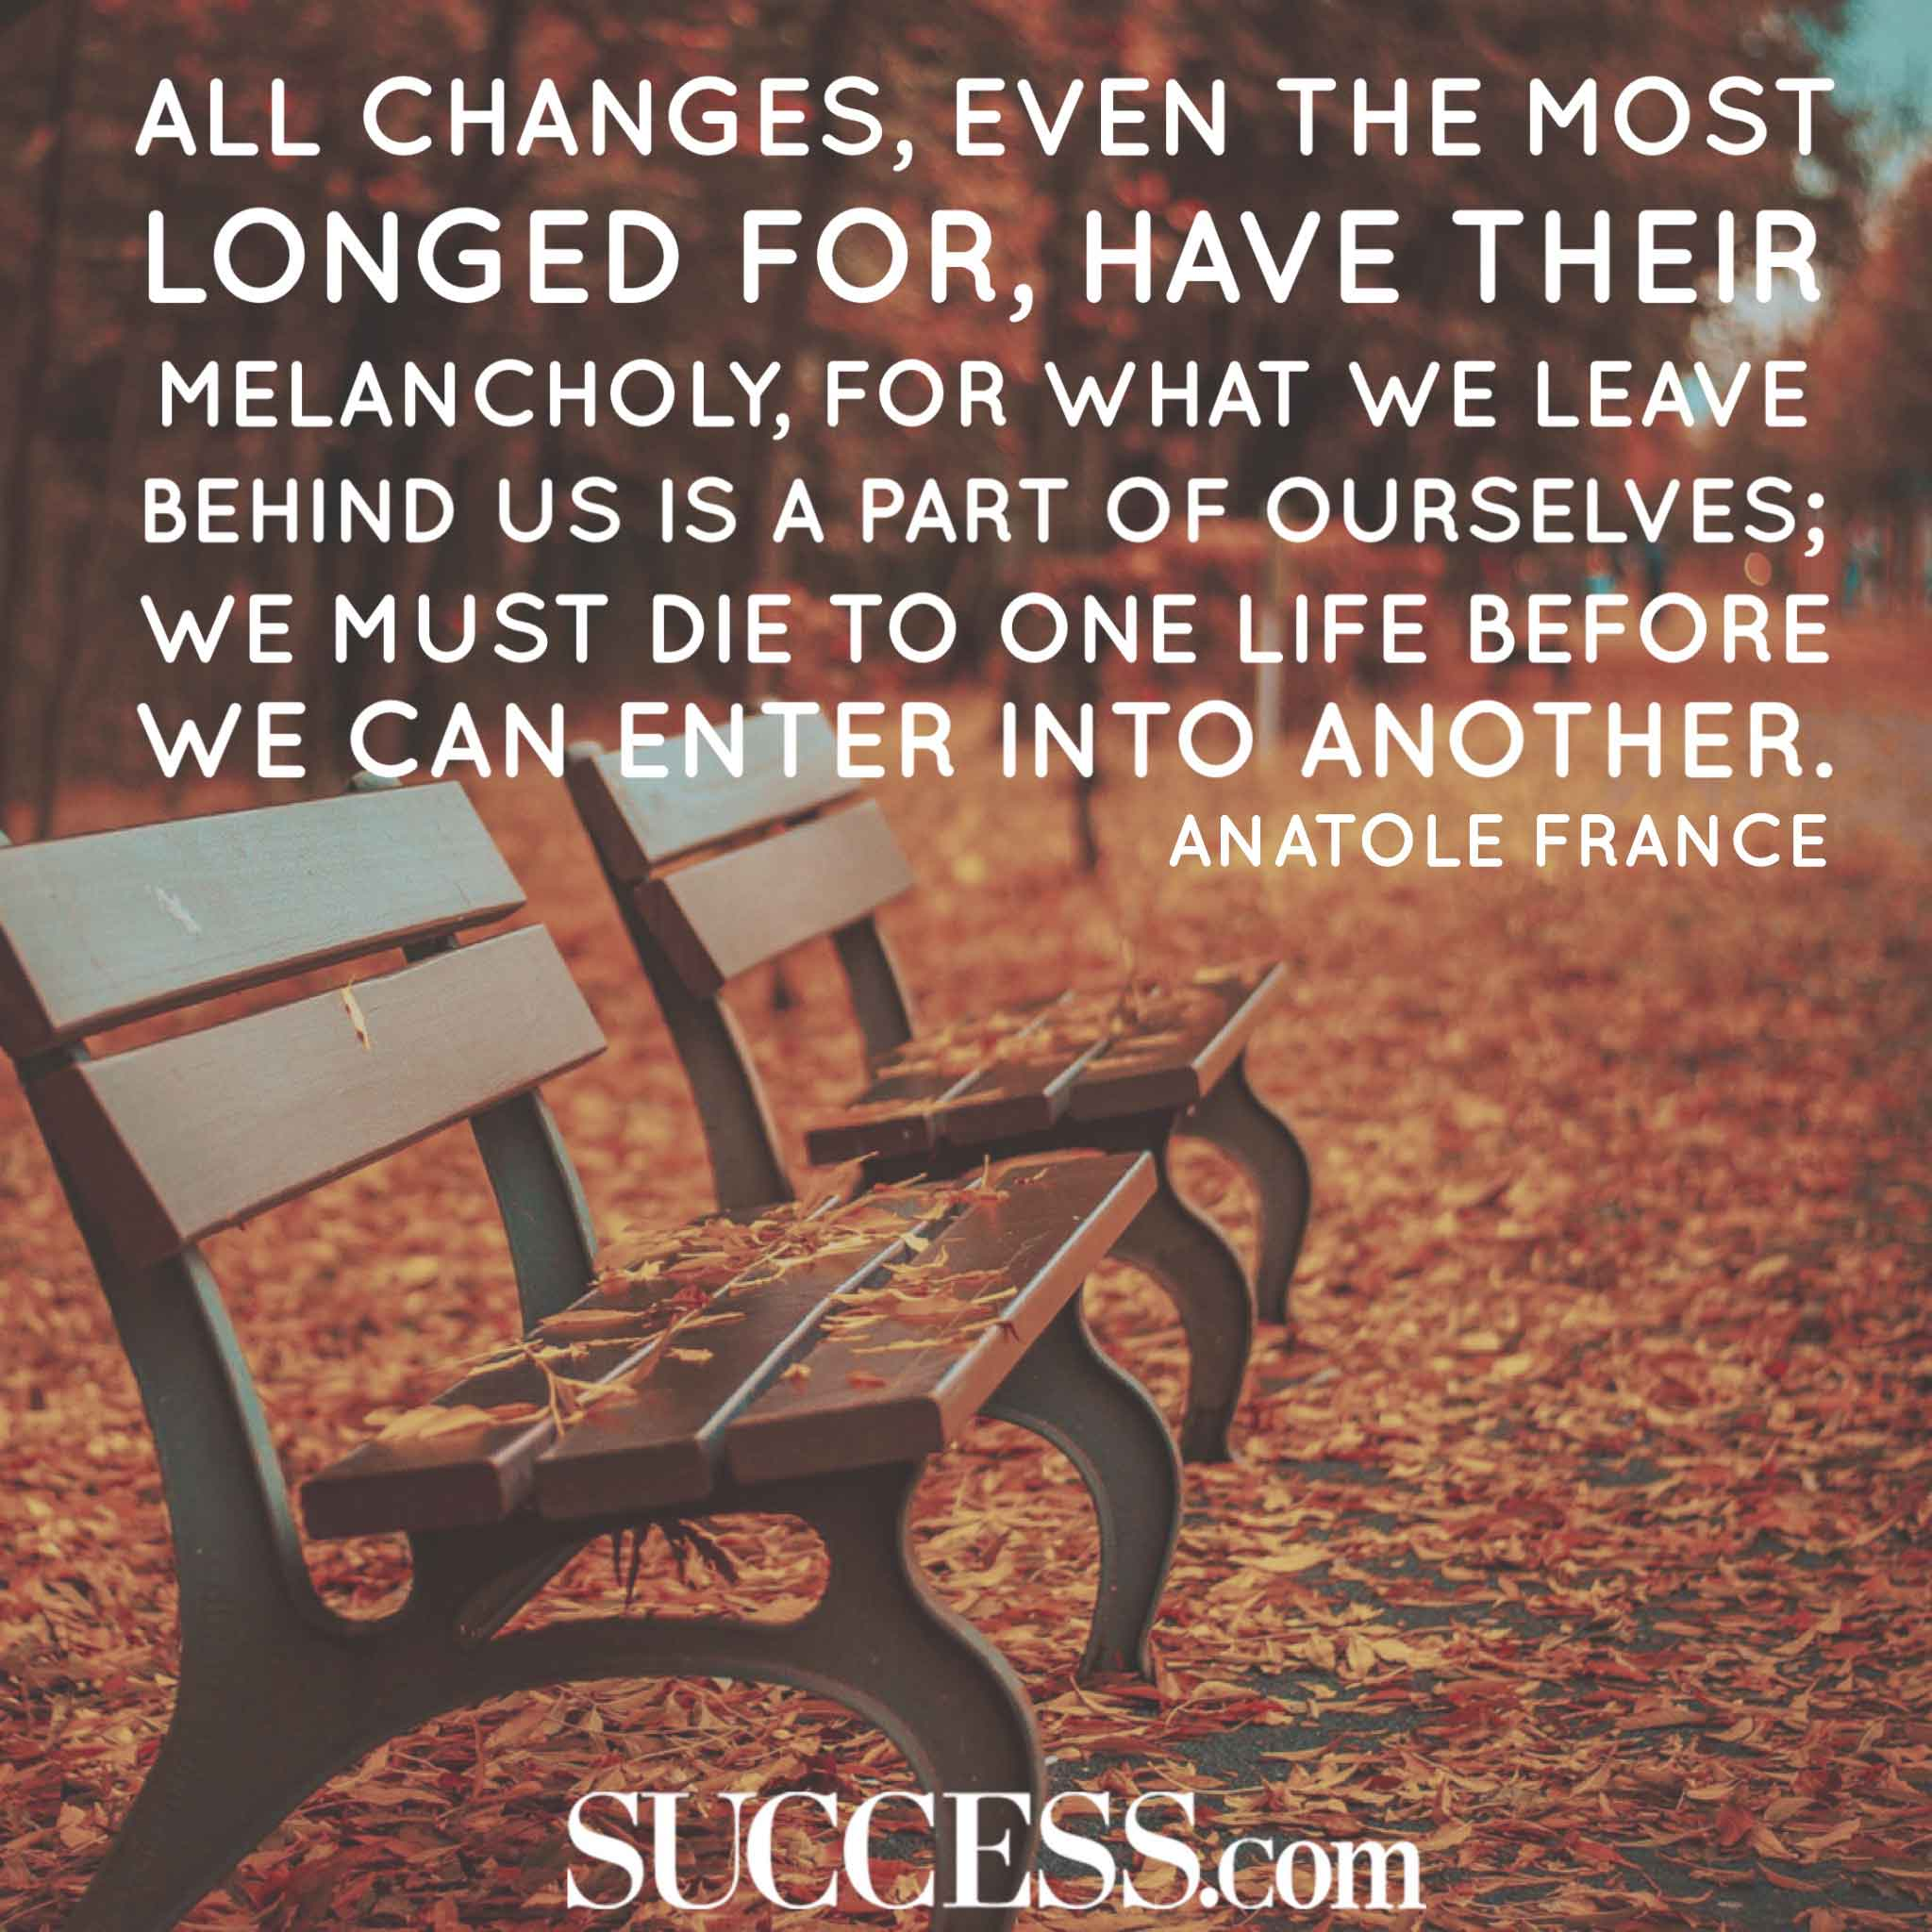 Quotes On Change: 21 Insightful Quotes About Embracing Change